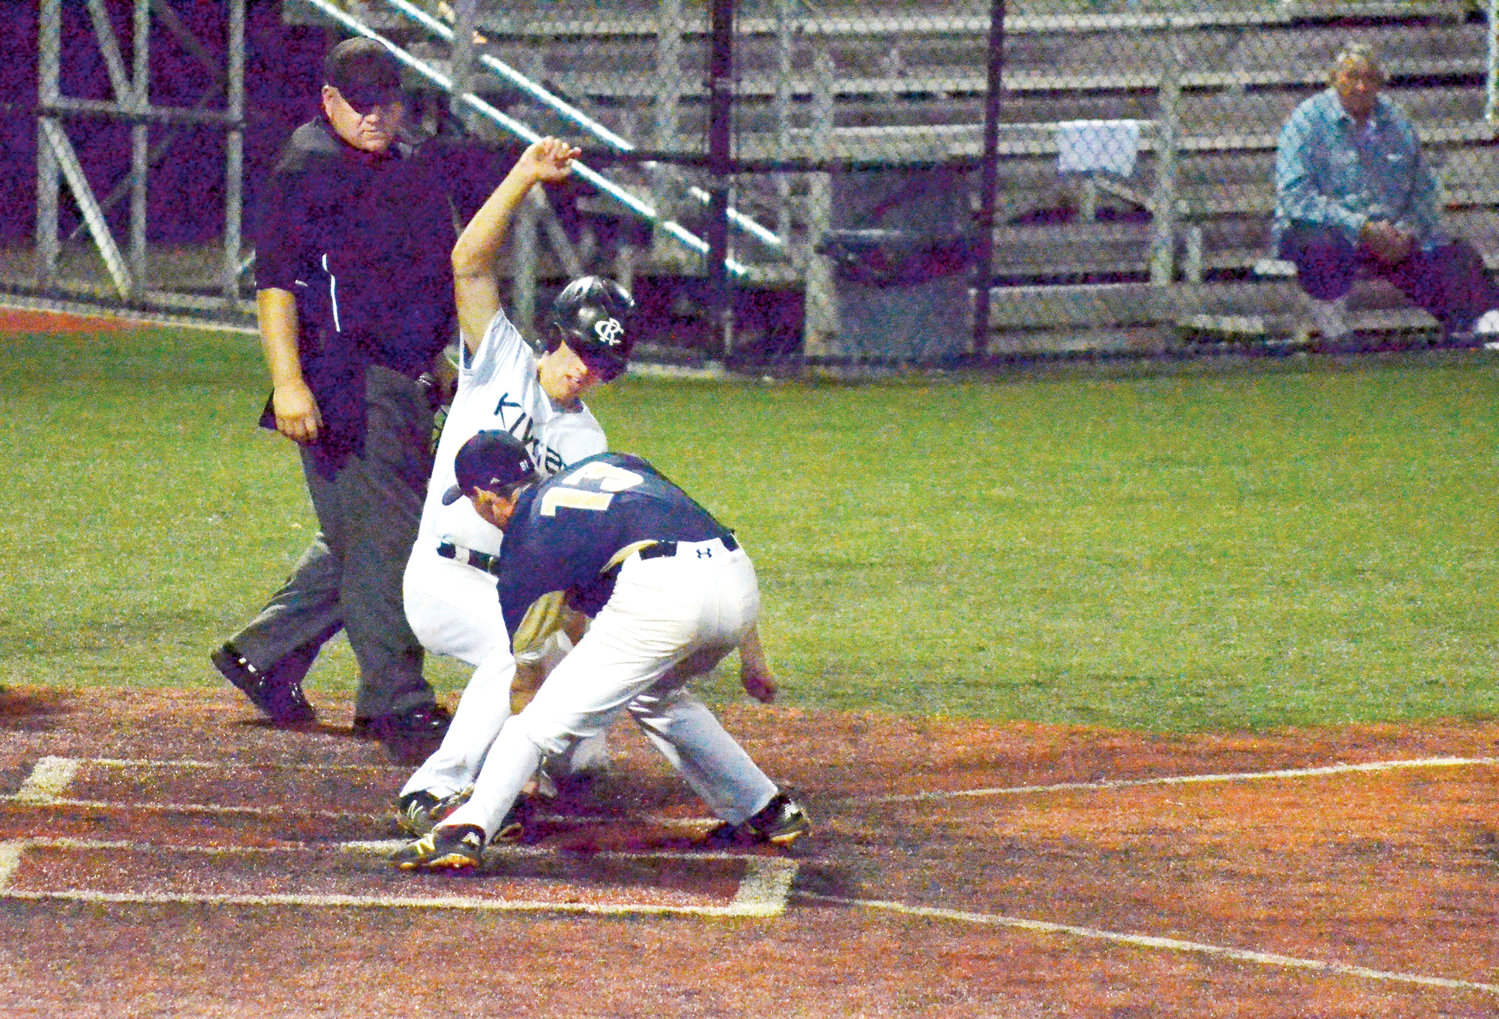 Post 81's Nate Canter comes in to defend home base in recent American Legion action.